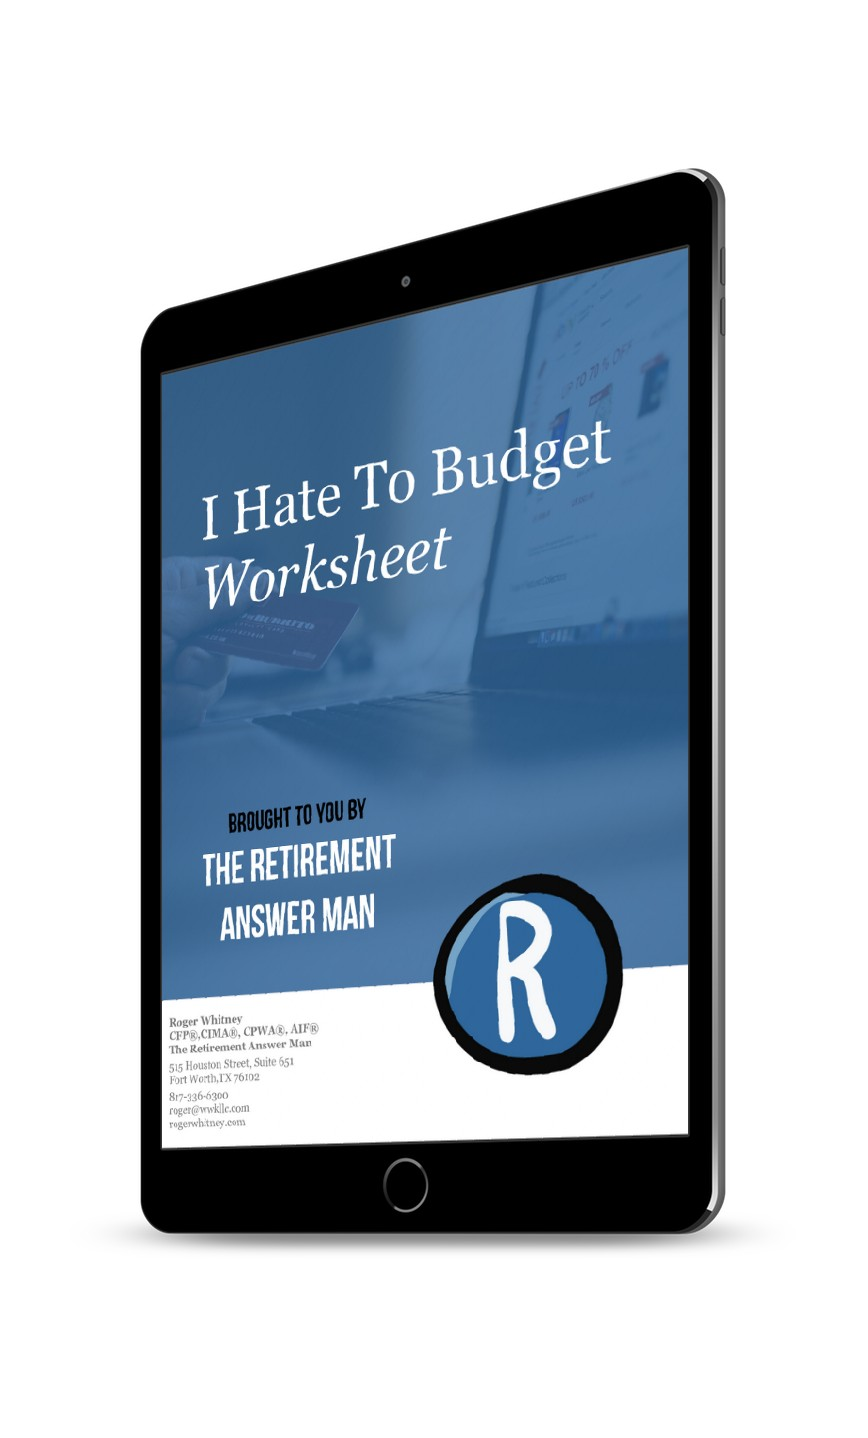 Retirement Resources — Roger Whitney